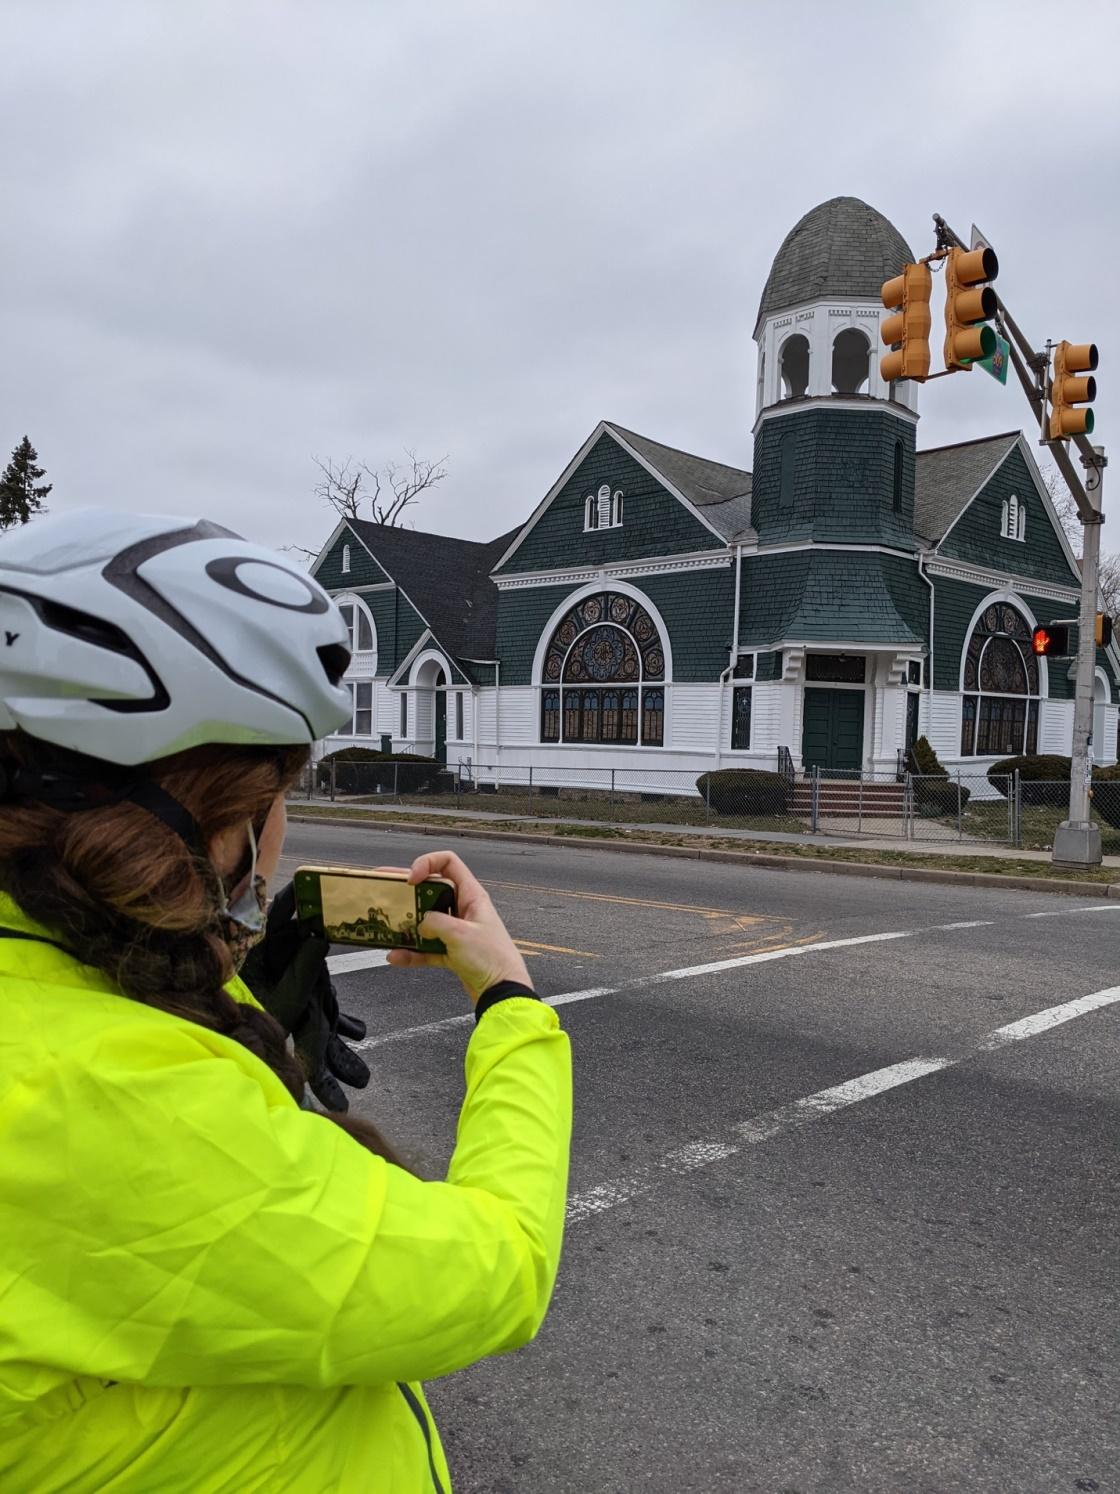 A person wearing a helmet is taking a picture of a green and white church with a big stained glass window.